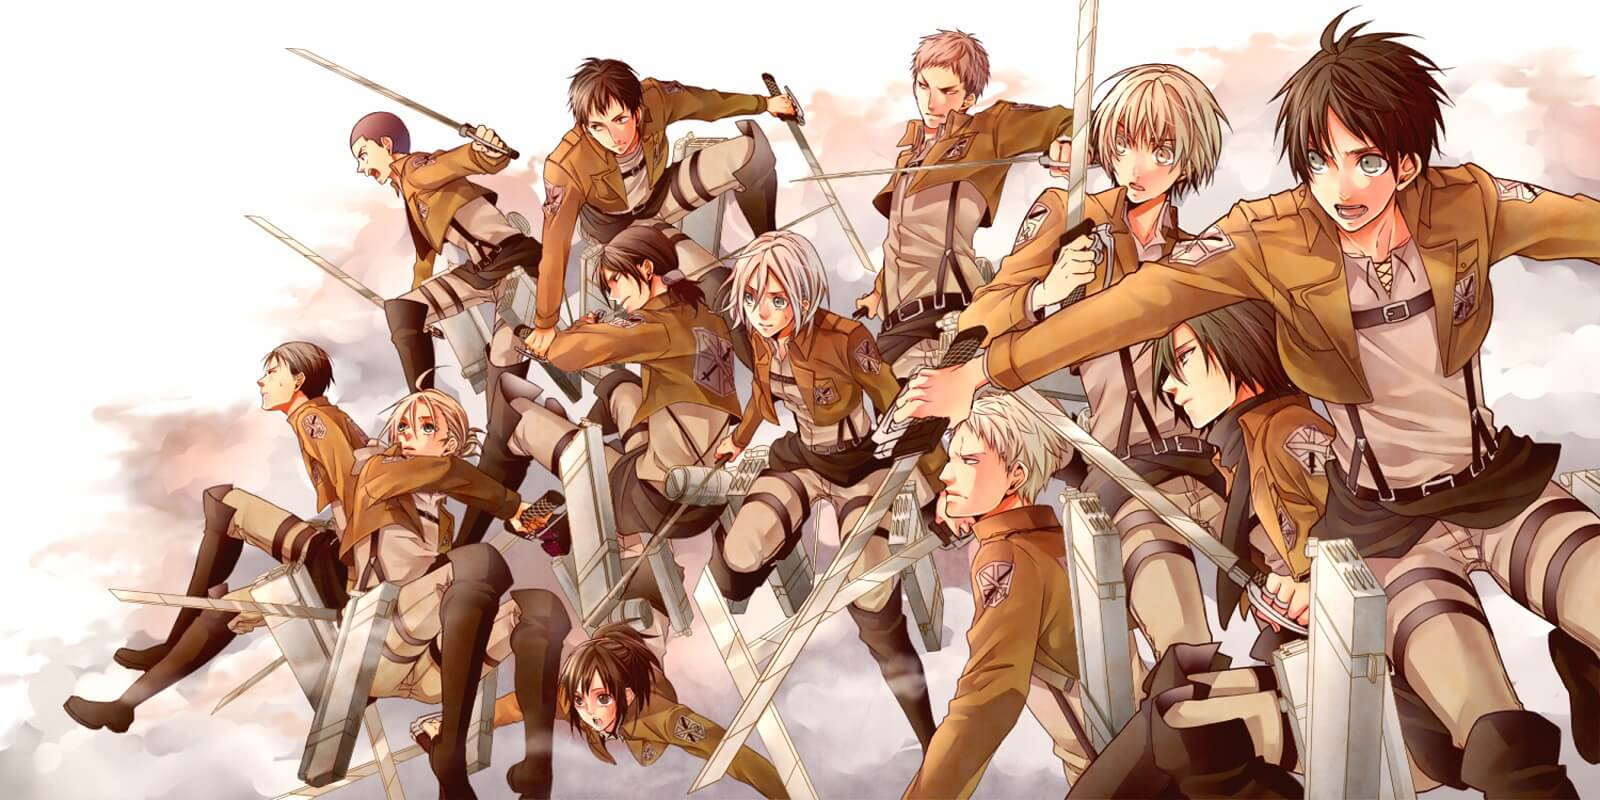 Attack on Titan soldiers 1 - Koei to Publish New Attack on Titan Game